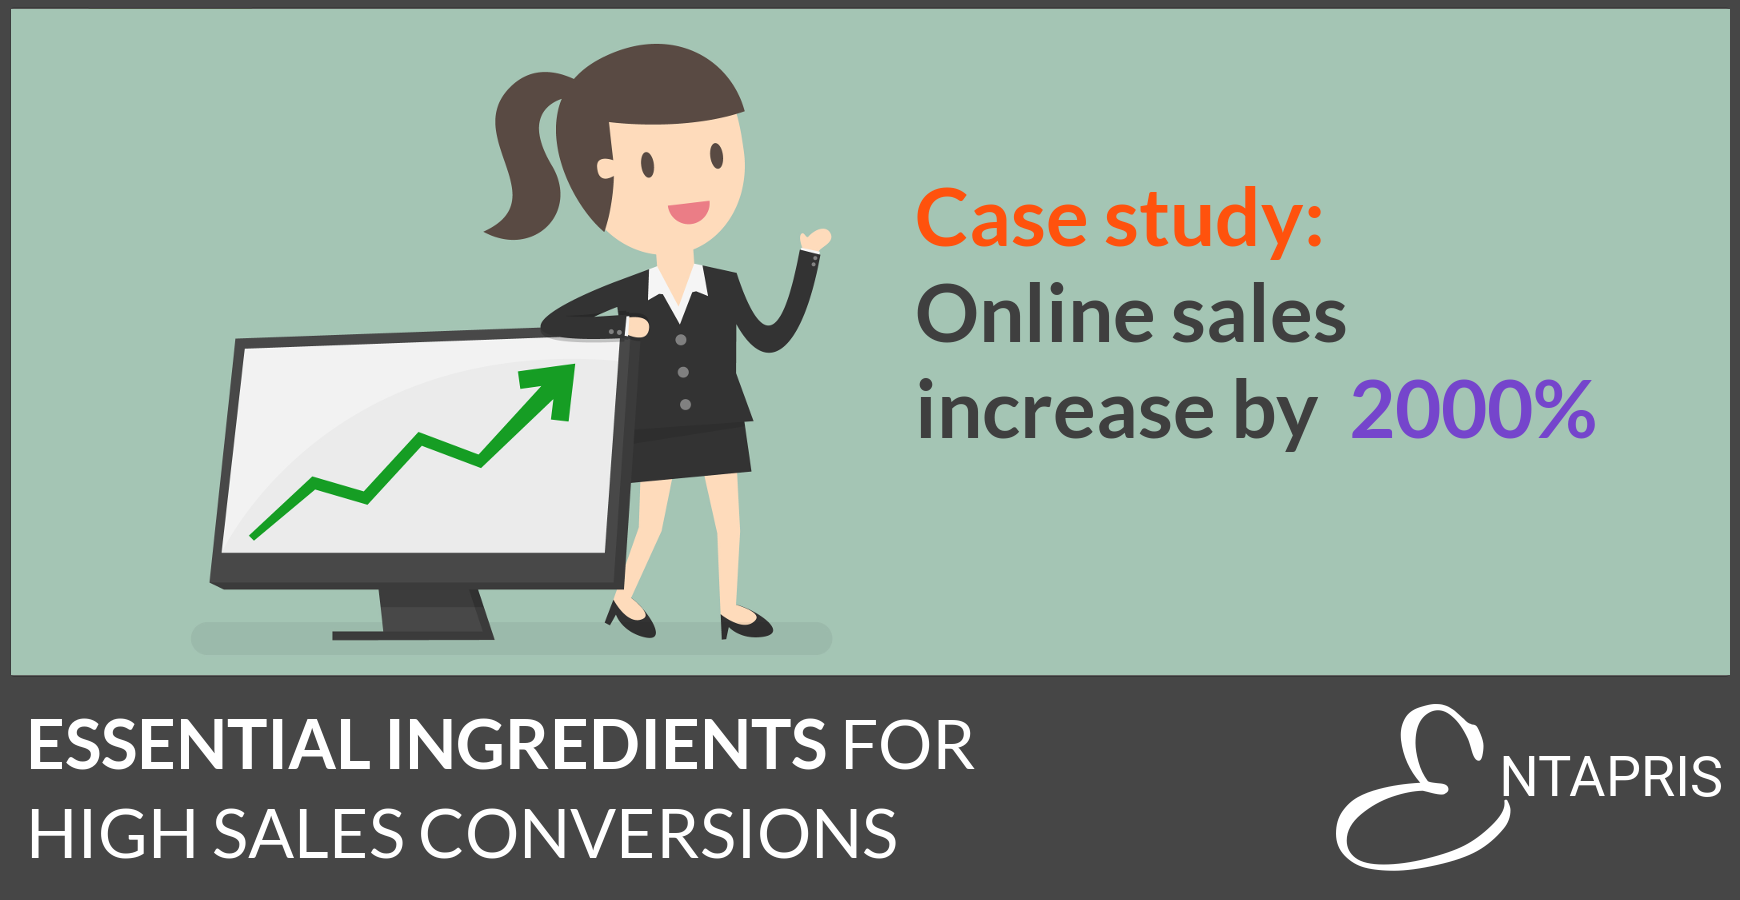 Essential ingredients for high online sales conversions